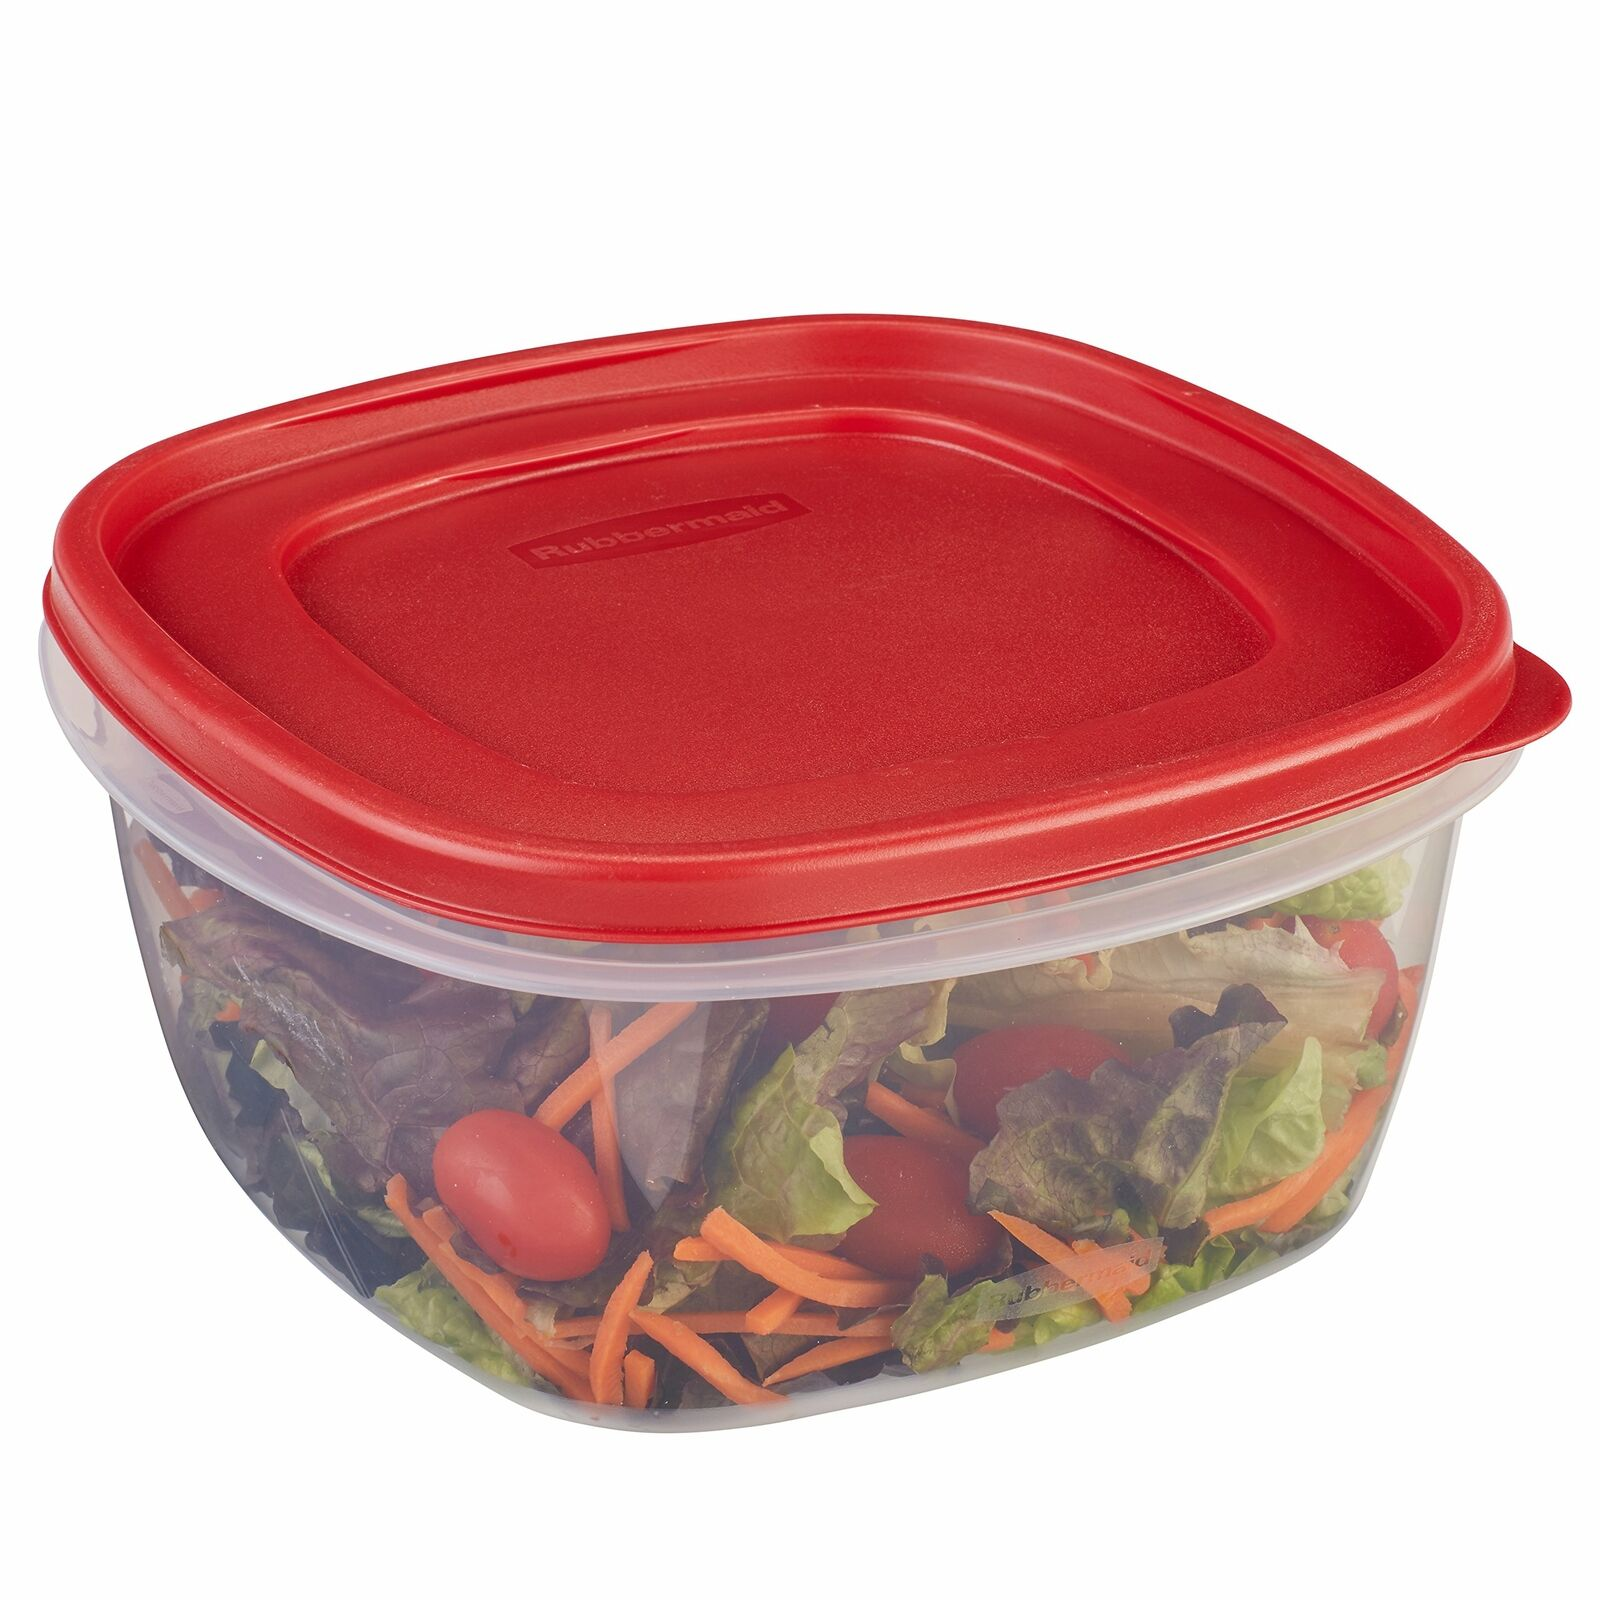 Rubbermaid Easy Find Lids Food Storage Container 14 Cup Racer Red 1777161 1